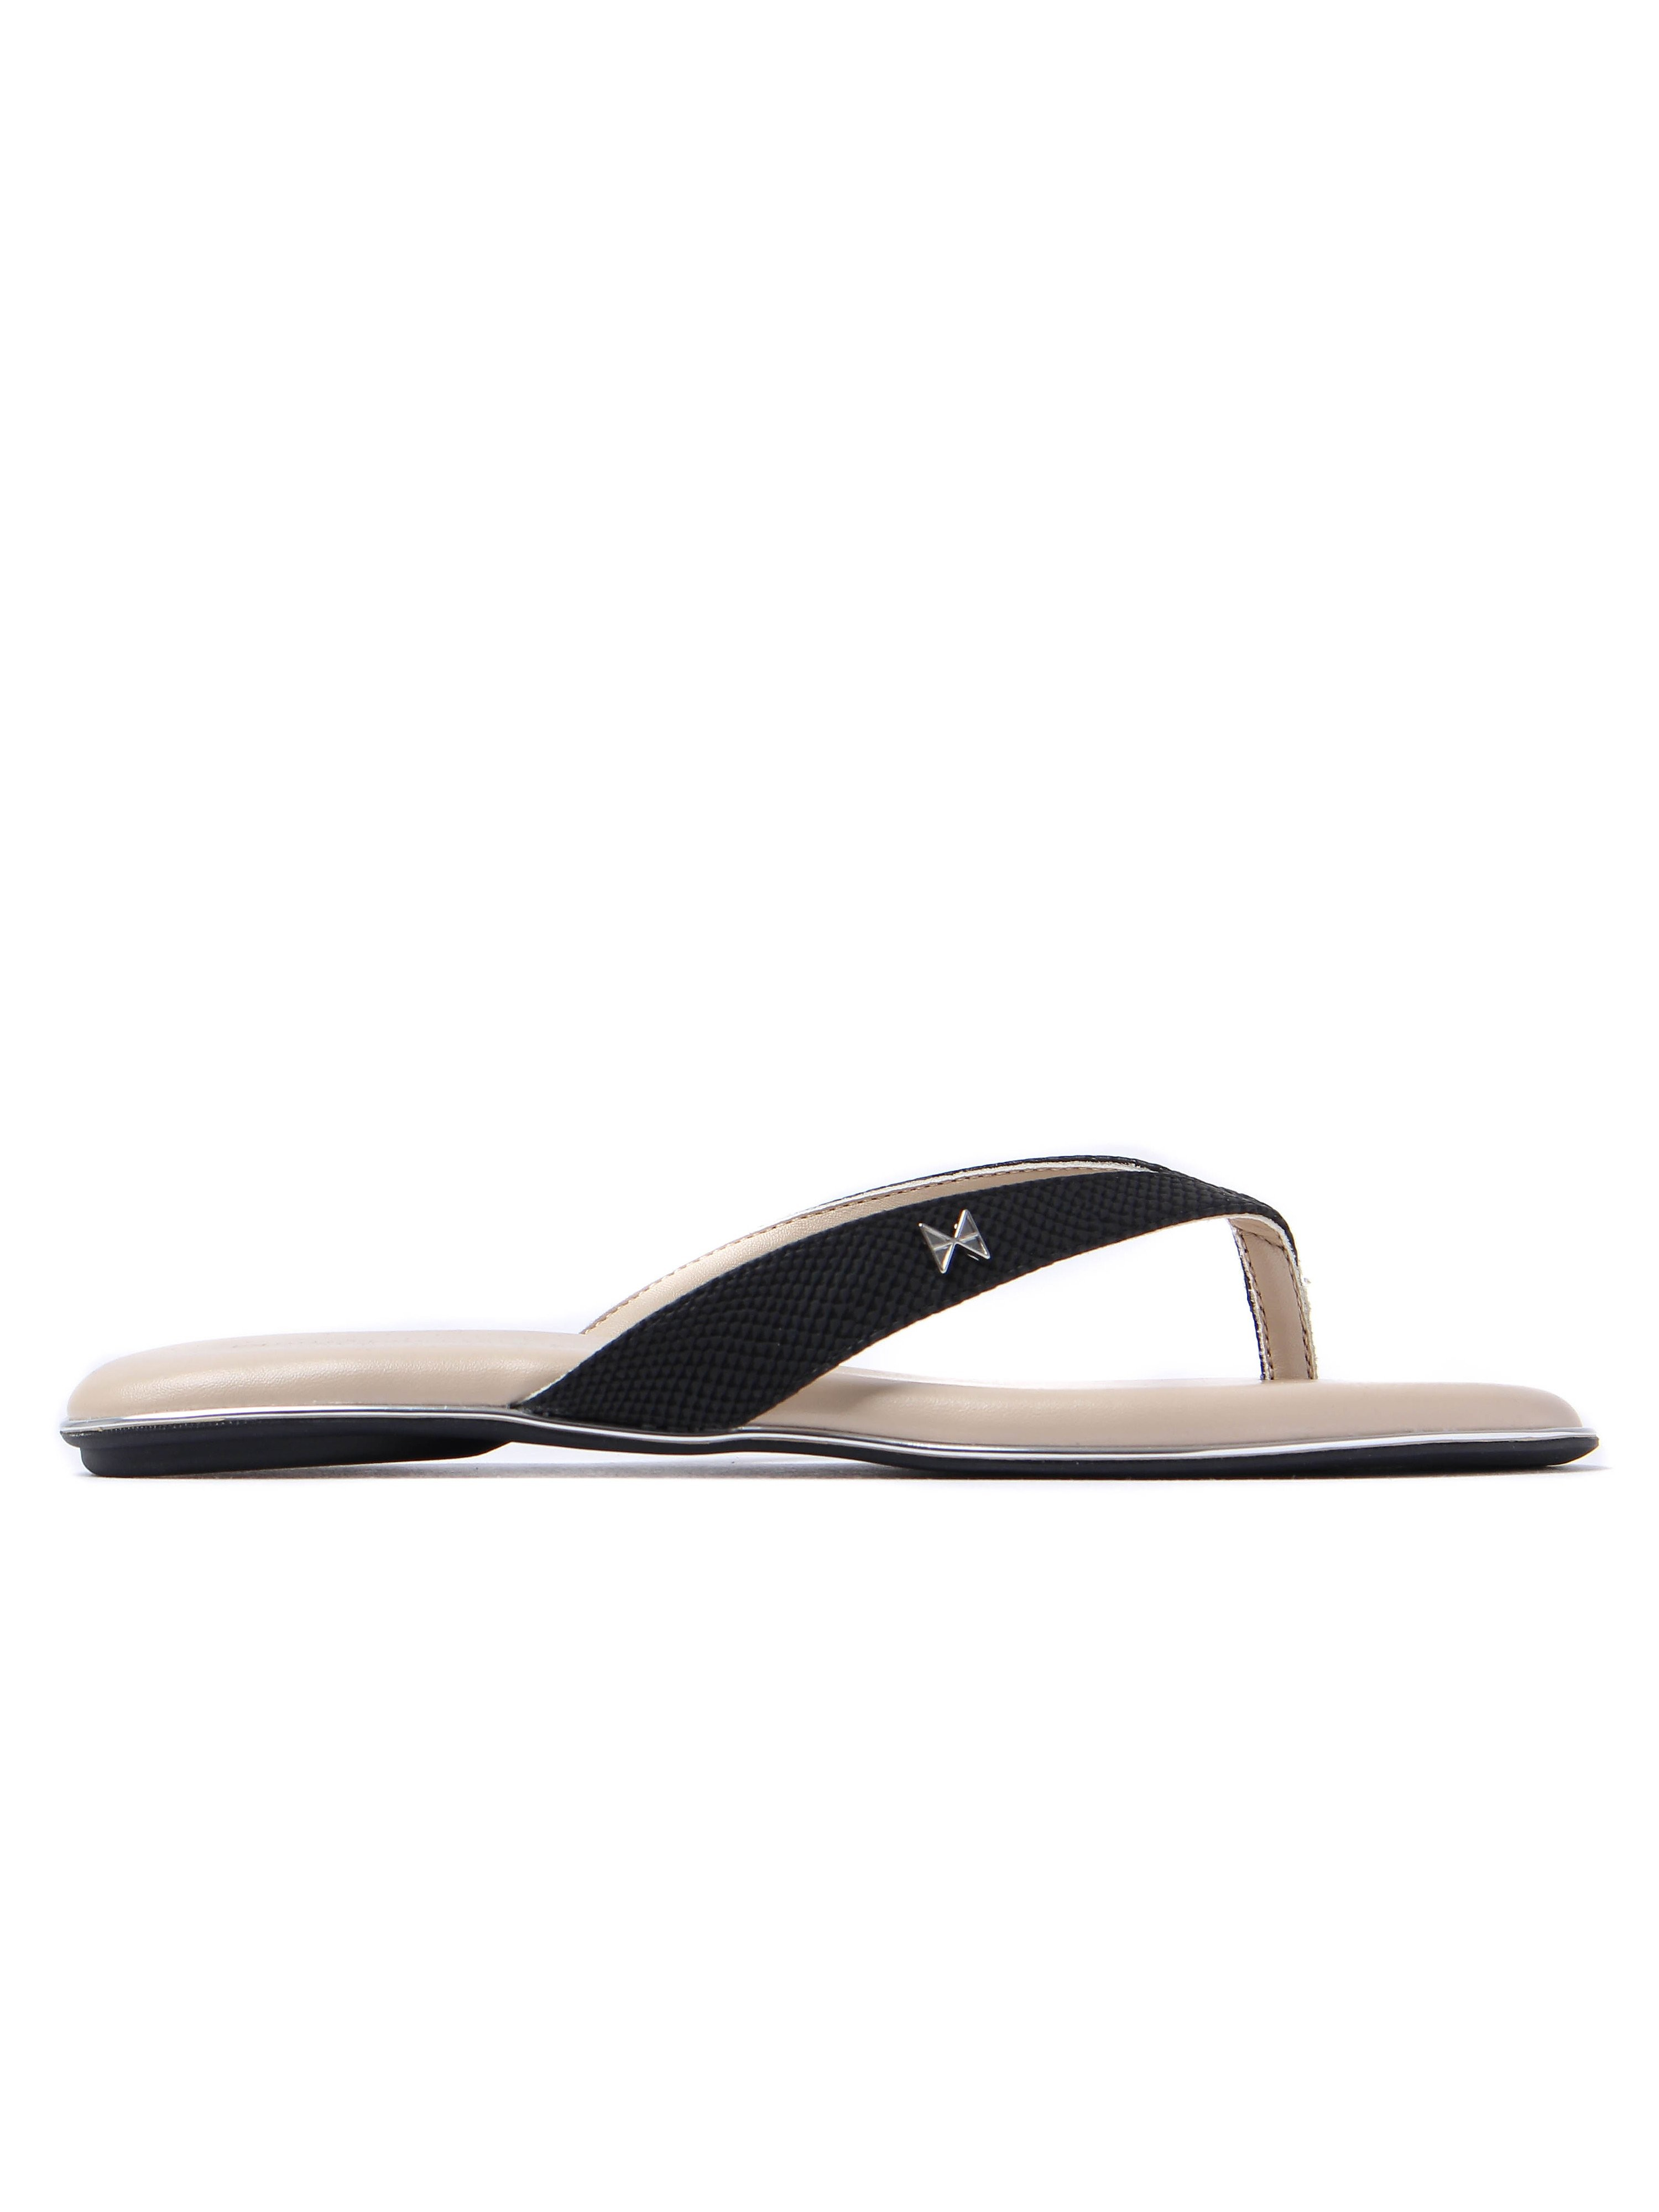 Butterfly Twists Women's Lola Snake Slim Flip Flops - Black